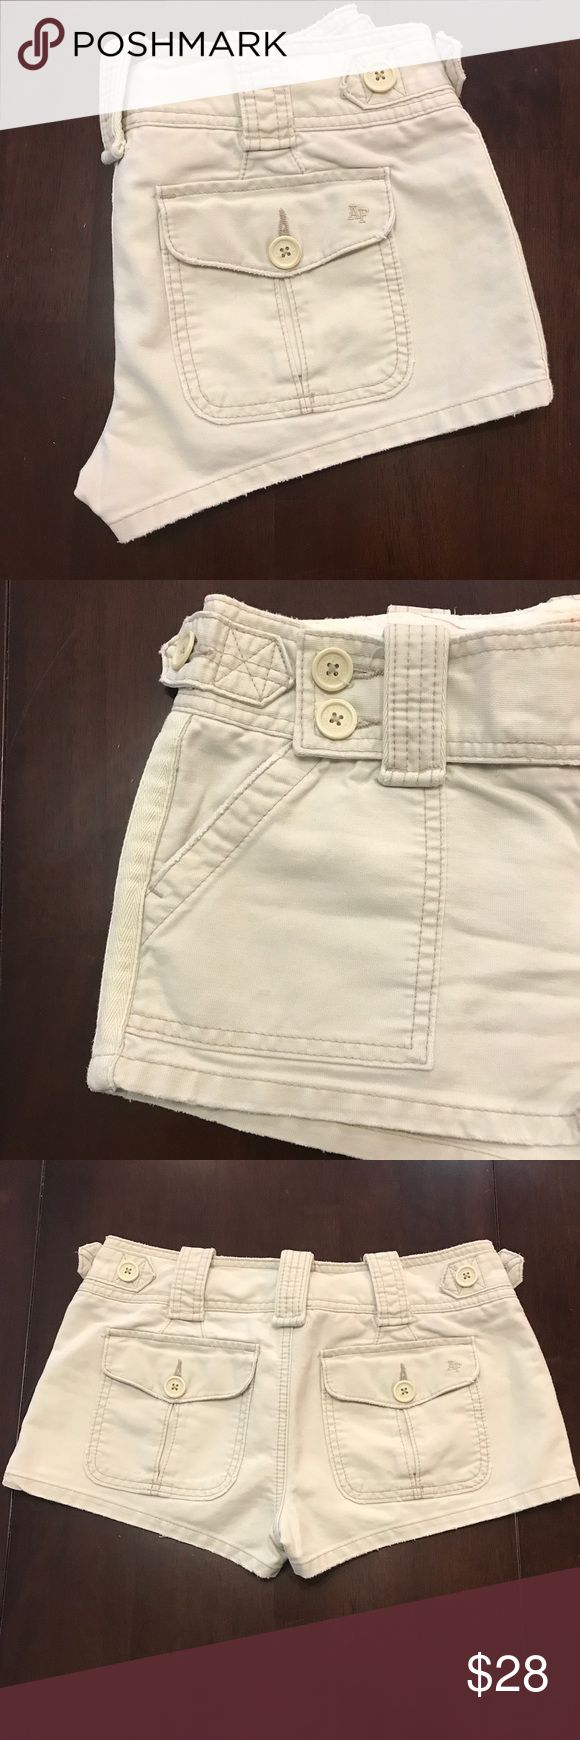 A&F Women's Khaki Shorts Abercrombie and Fitch Women's Shorts Khaki, size 4. Cute flap closure with buttons. In like new condition. Worn twice. Abercrombie & Fitch Shorts